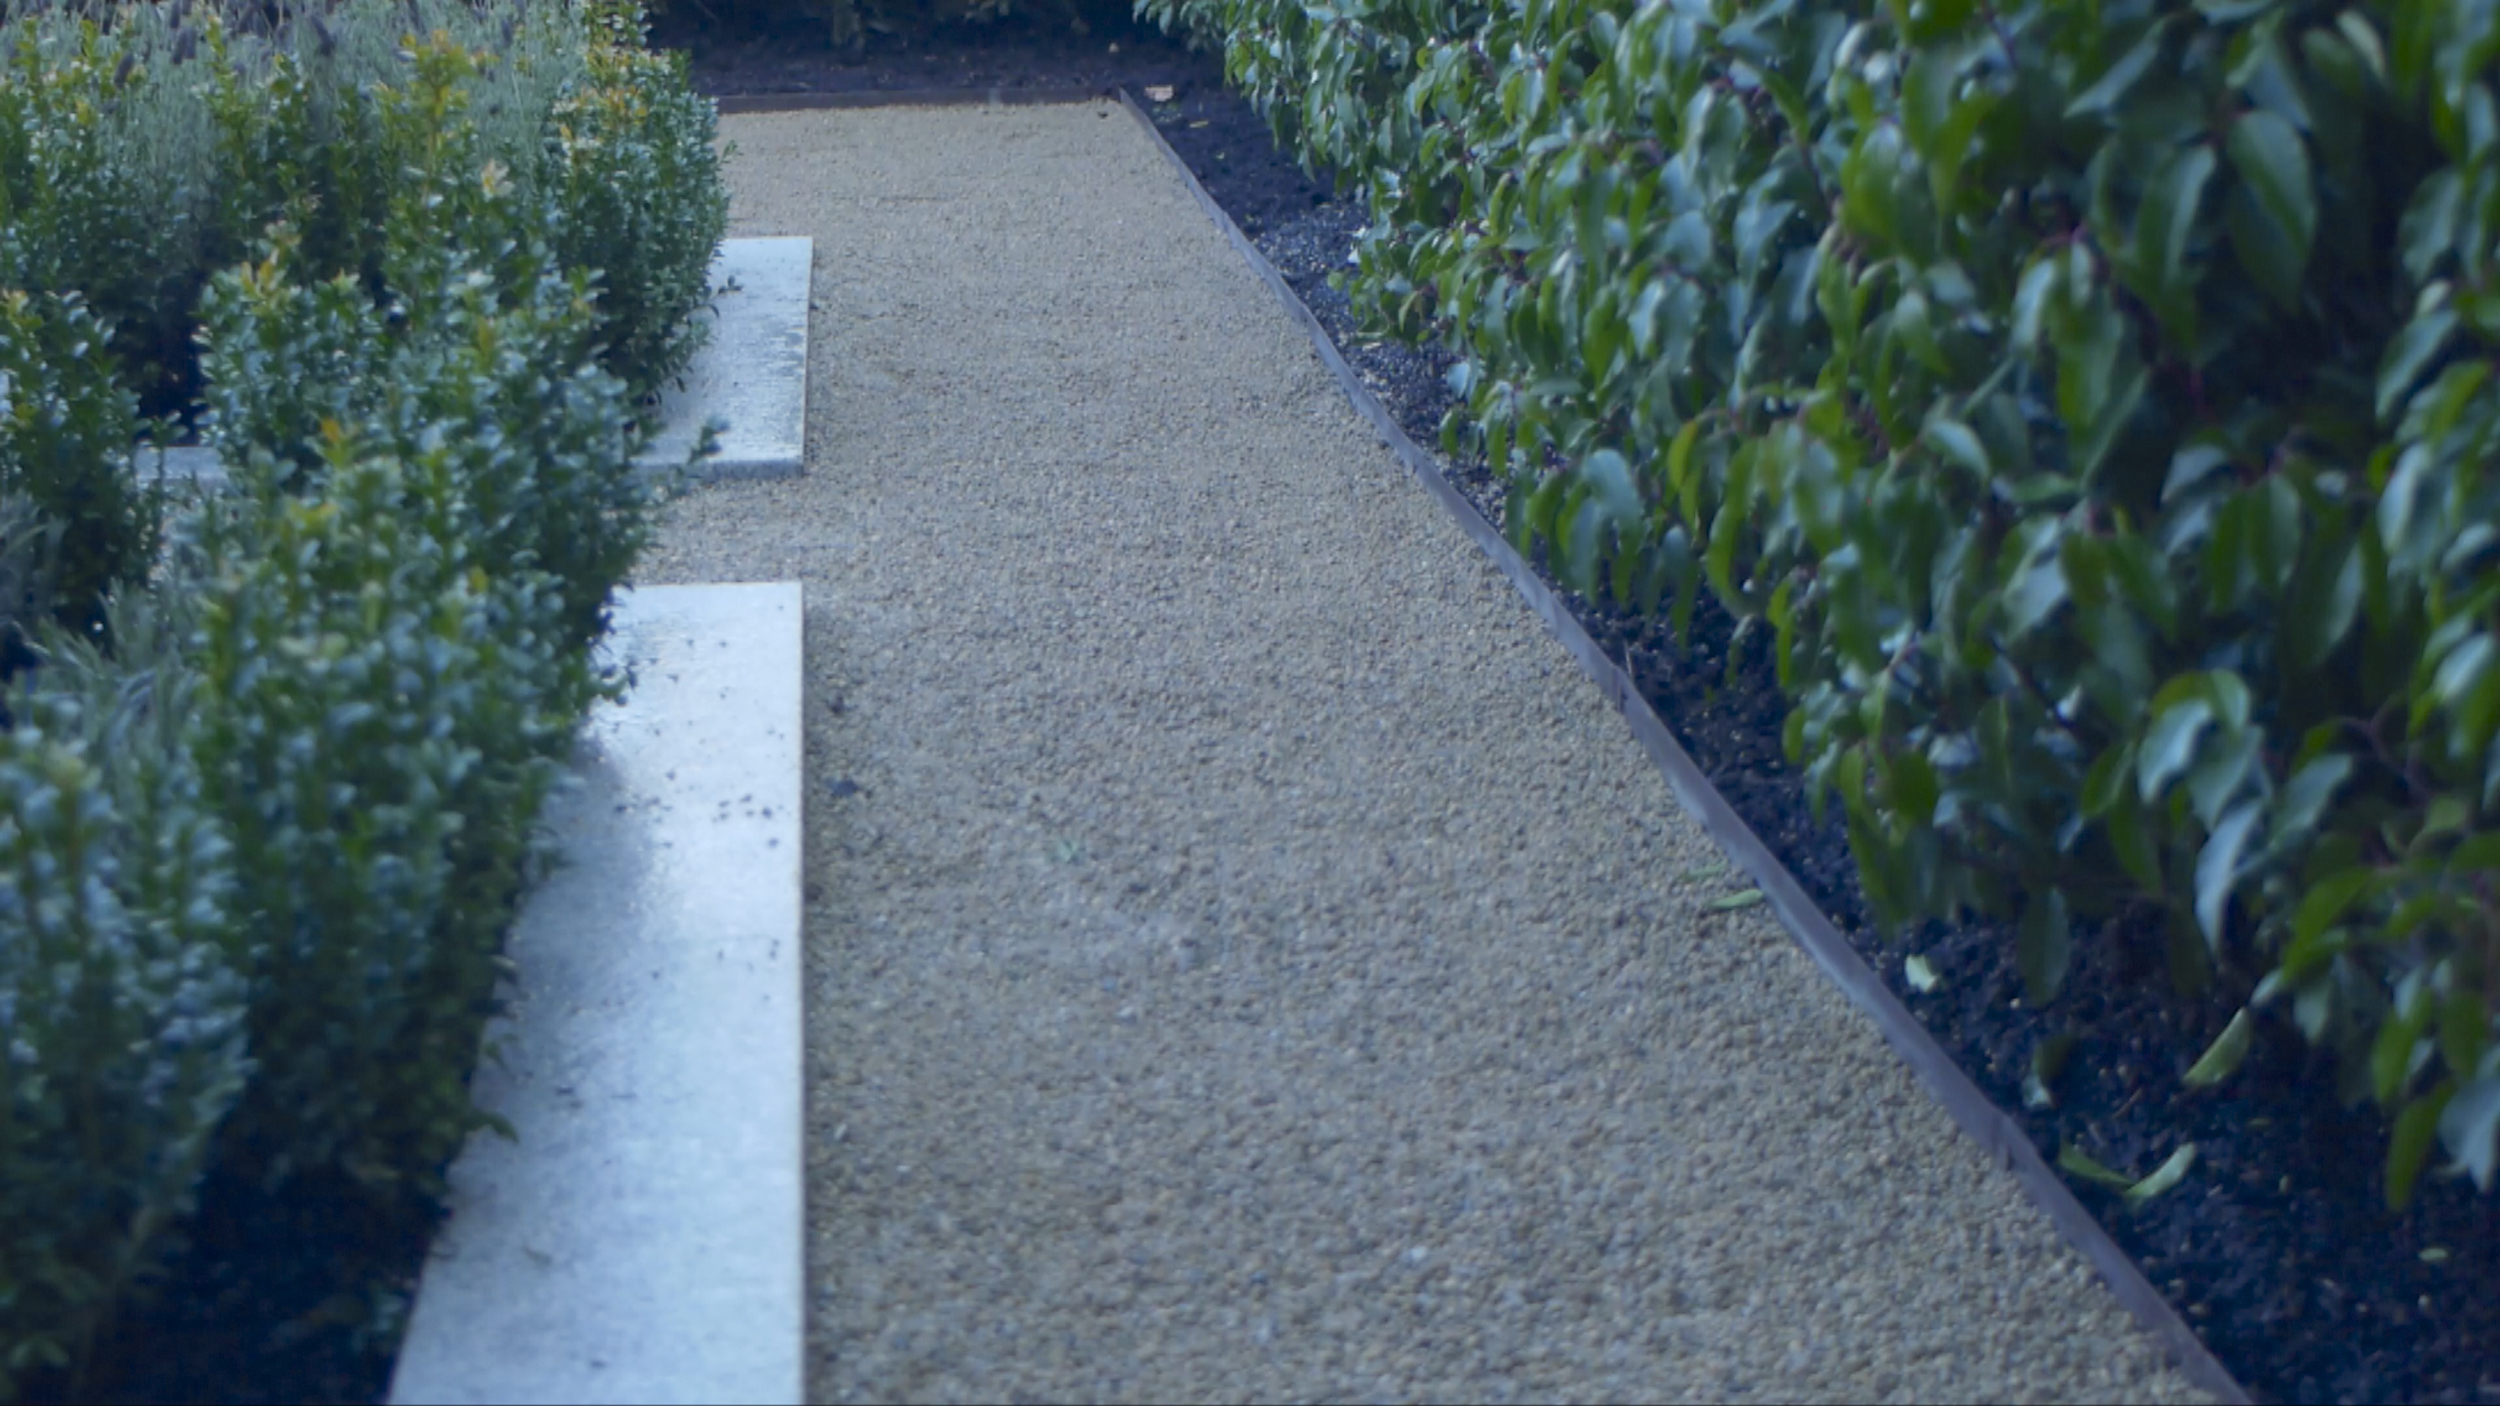 Hedging and beds